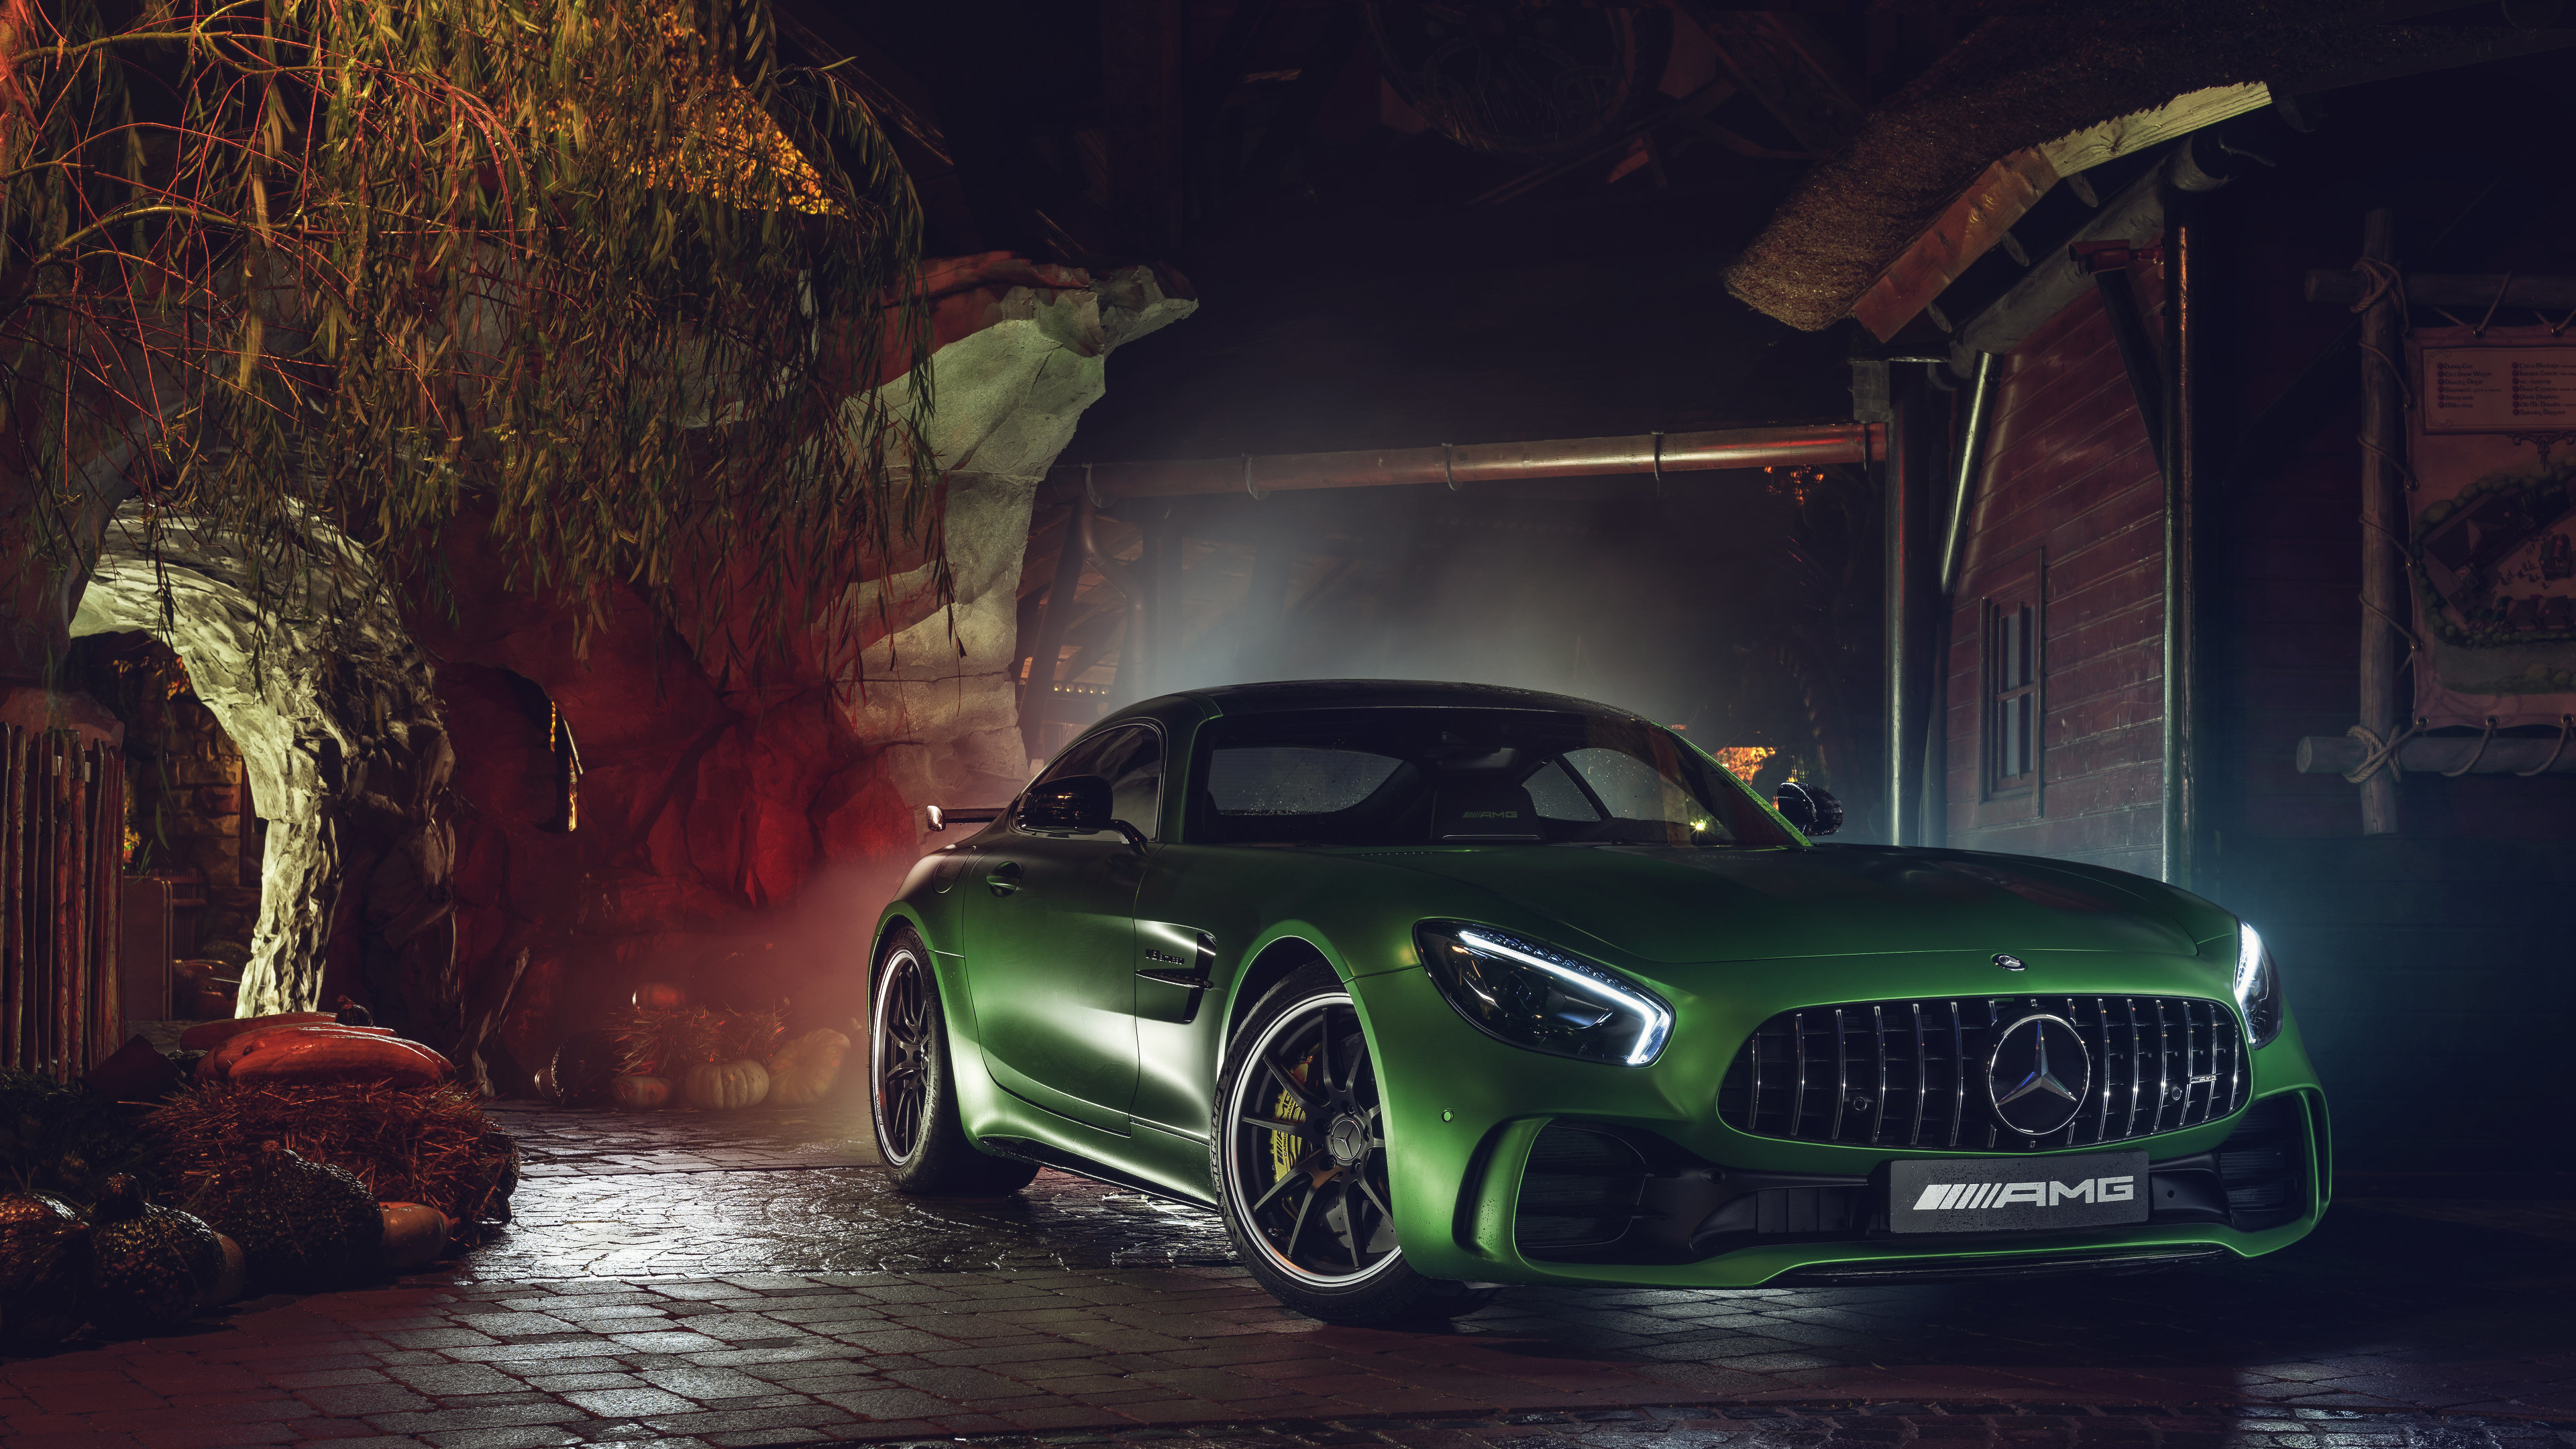 green mercedes amg gtr 4k 1546361528 - Green Mercedes AMG GTR  4k - mercedes wallpapers, mercedes amg gtr wallpapers, hd-wallpapers, cars wallpapers, 4k-wallpapers, 2018 cars wallpapers